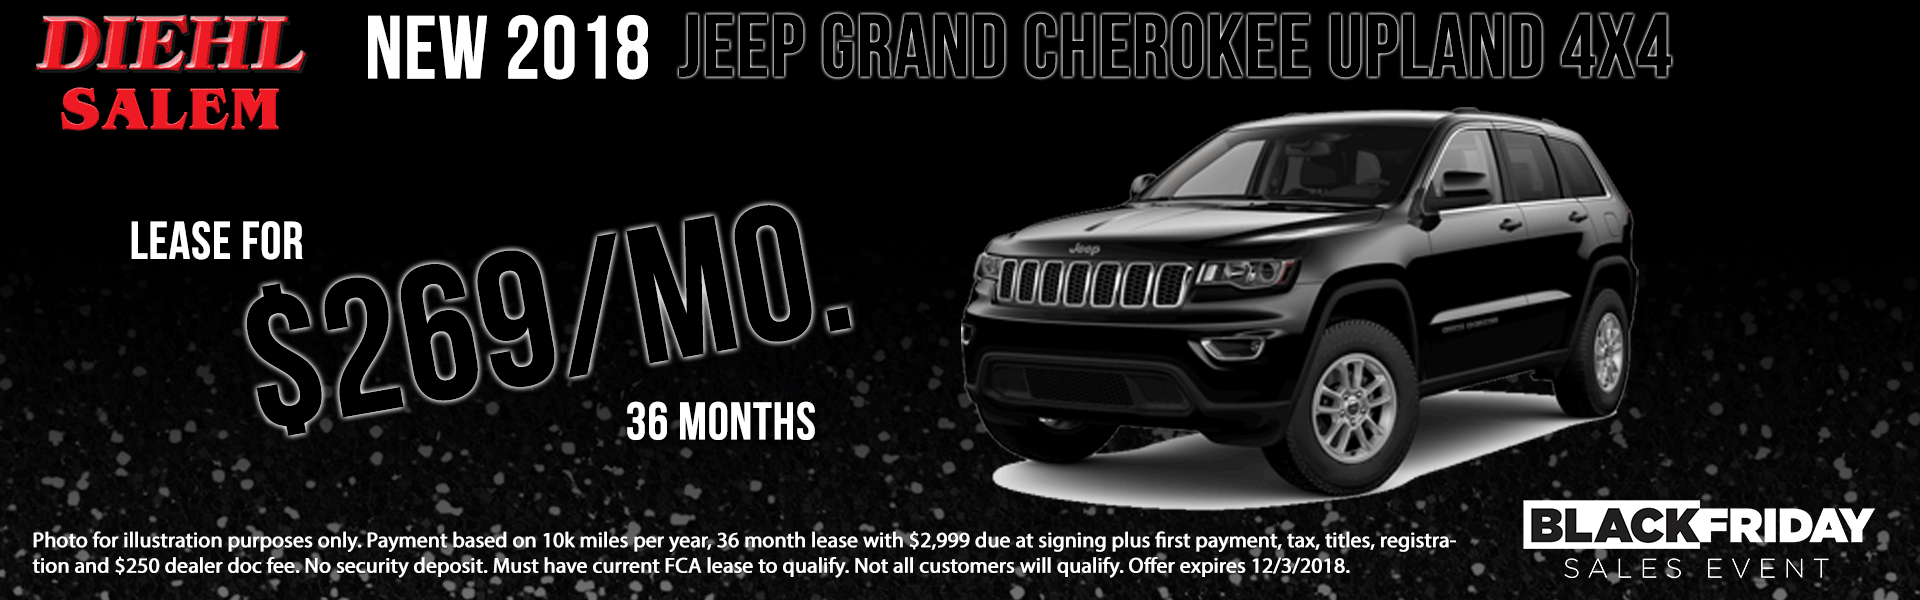 Diehl of Salem ohio chrysler jeep dodge ram new and used sales, service, parts, accessories, monthly specials NEW 2018 JEEP GRAND CHEROKEE UPLAND 4X4